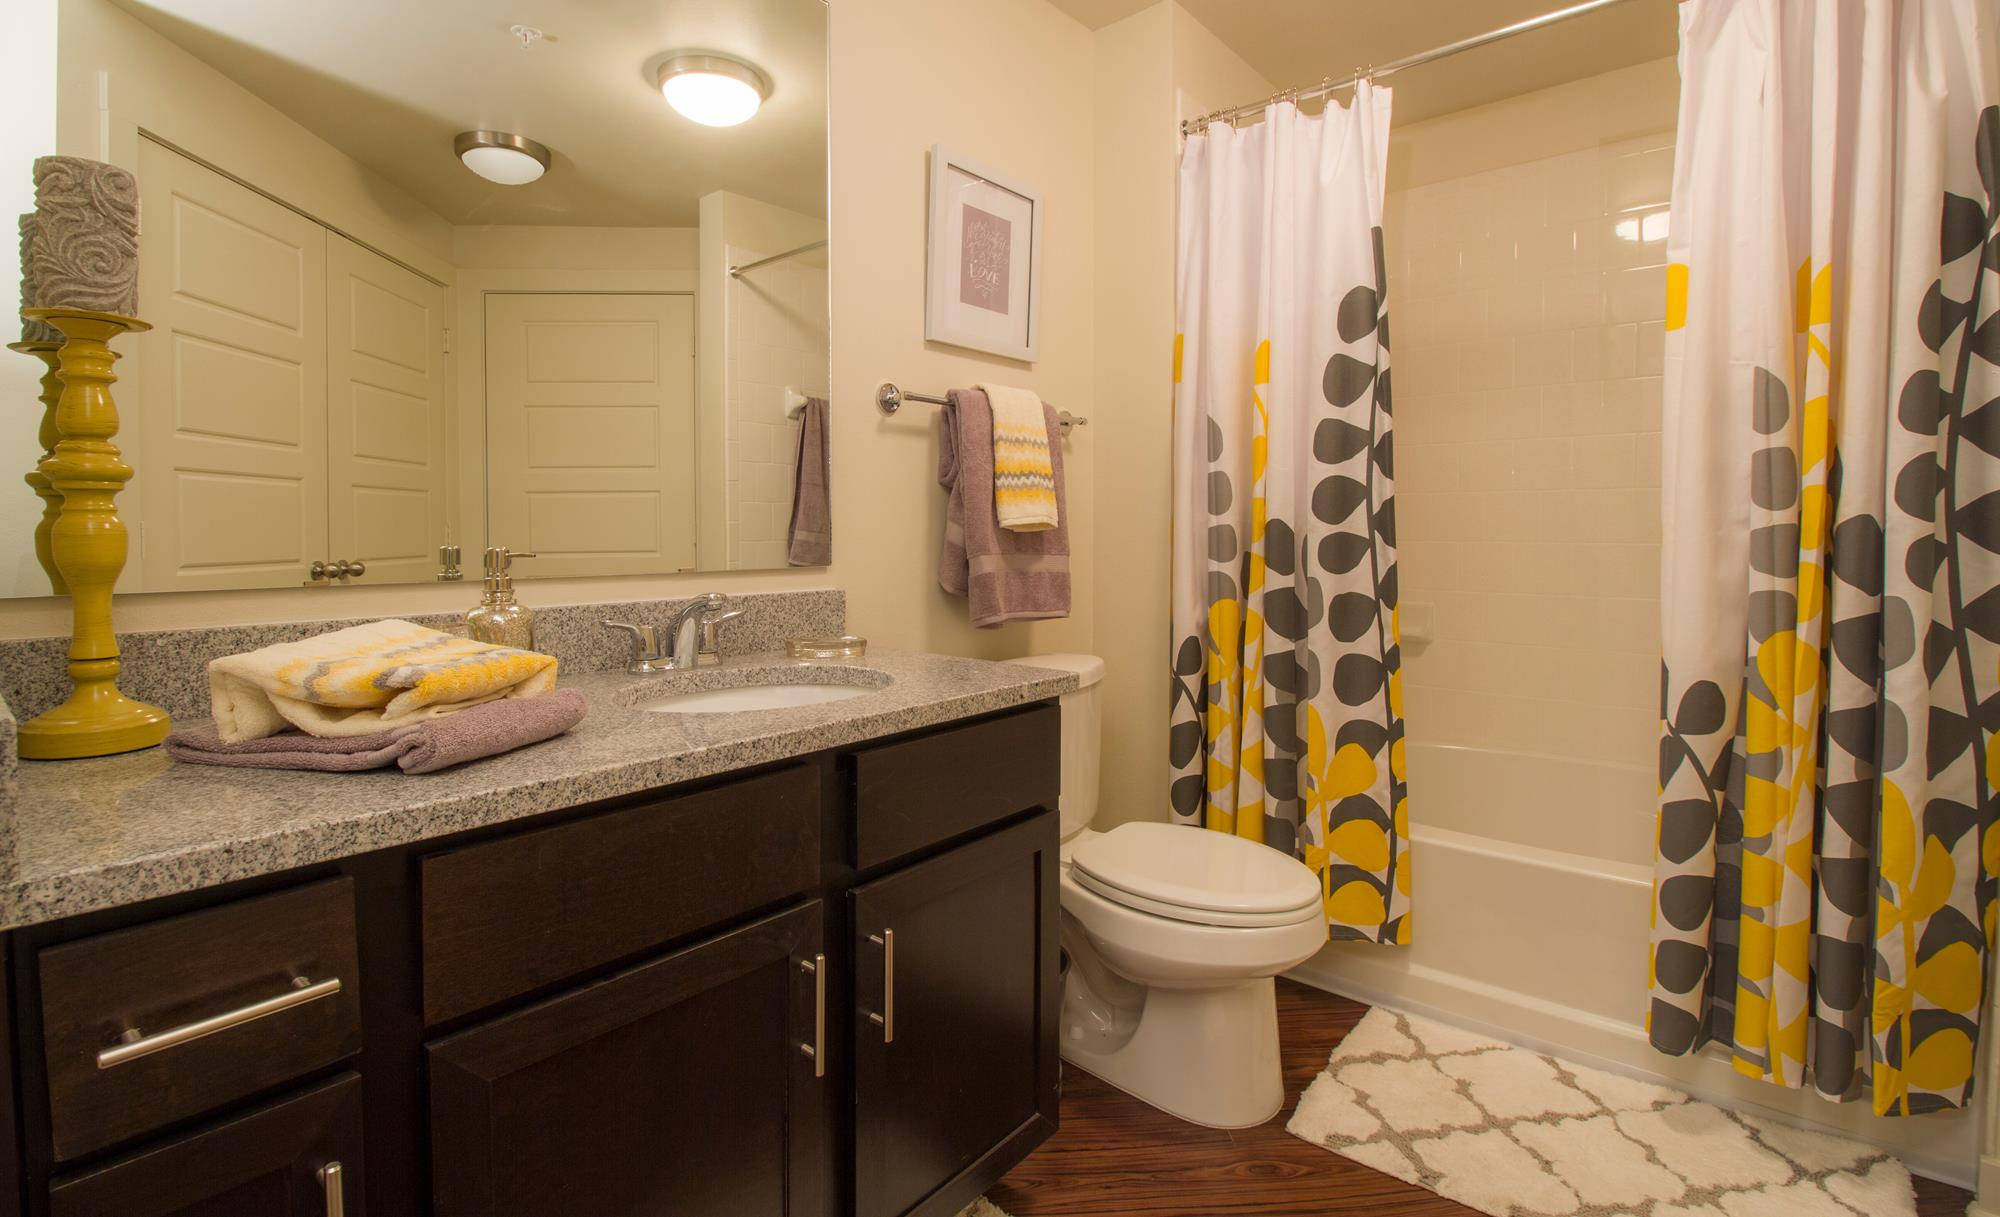 Bathrooms with Granite Style Countertops at The District, Baton Rouge,Louisiana